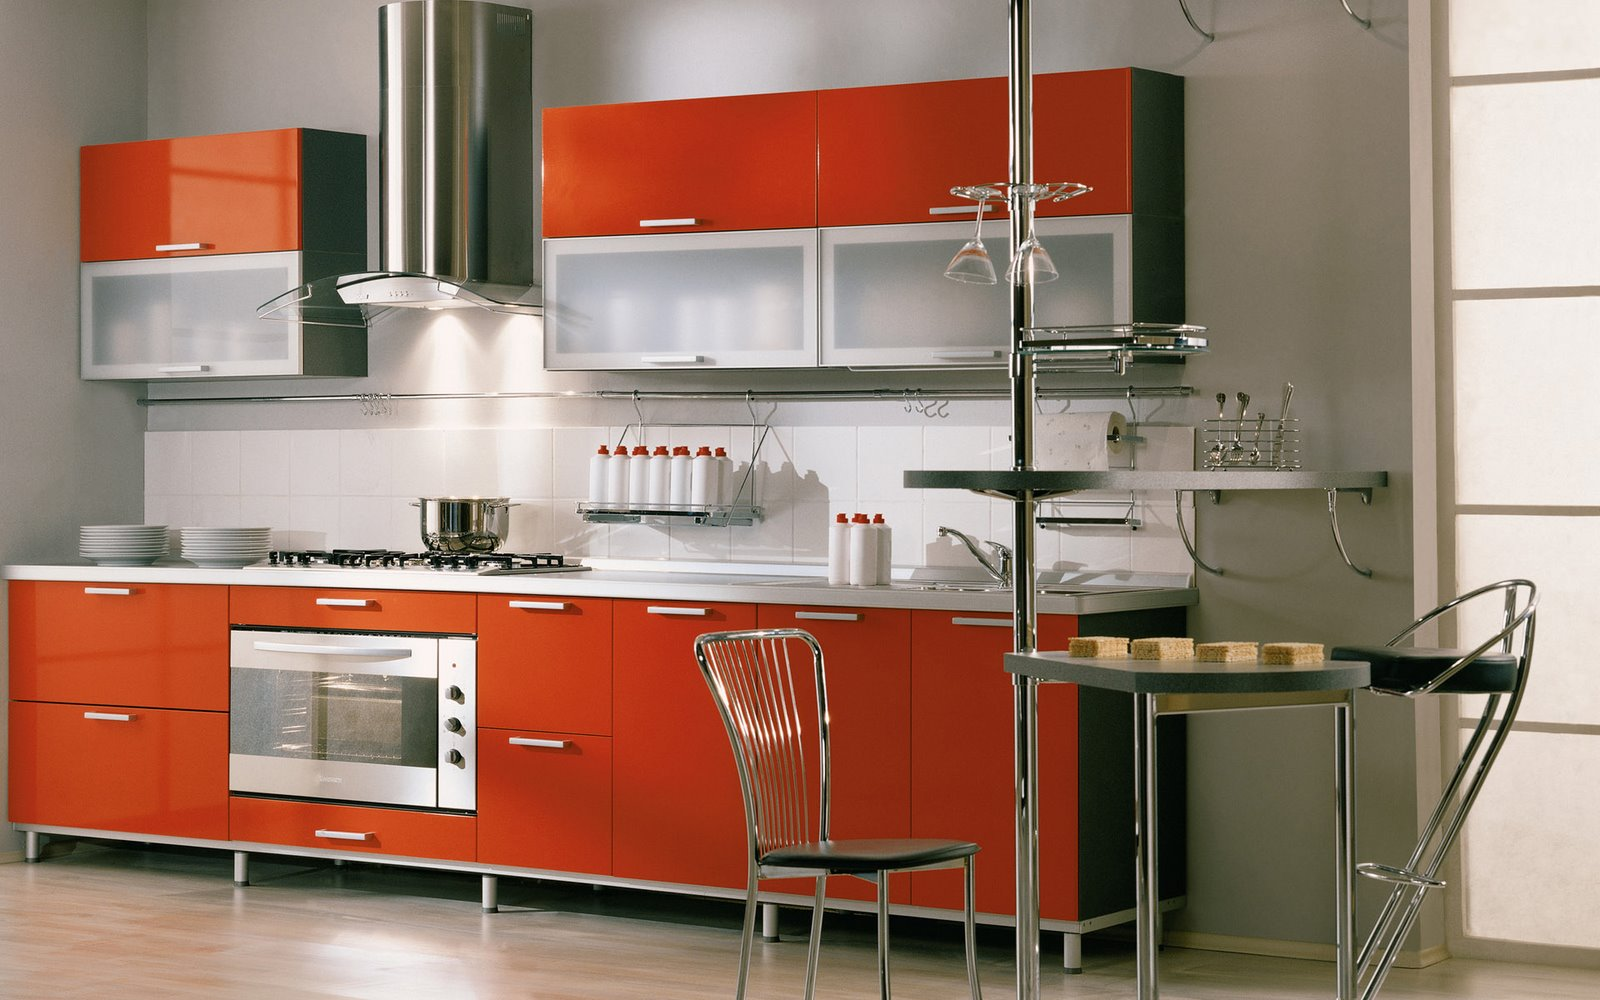 kitchendesigns.com on Modern kitchen designs in Red !